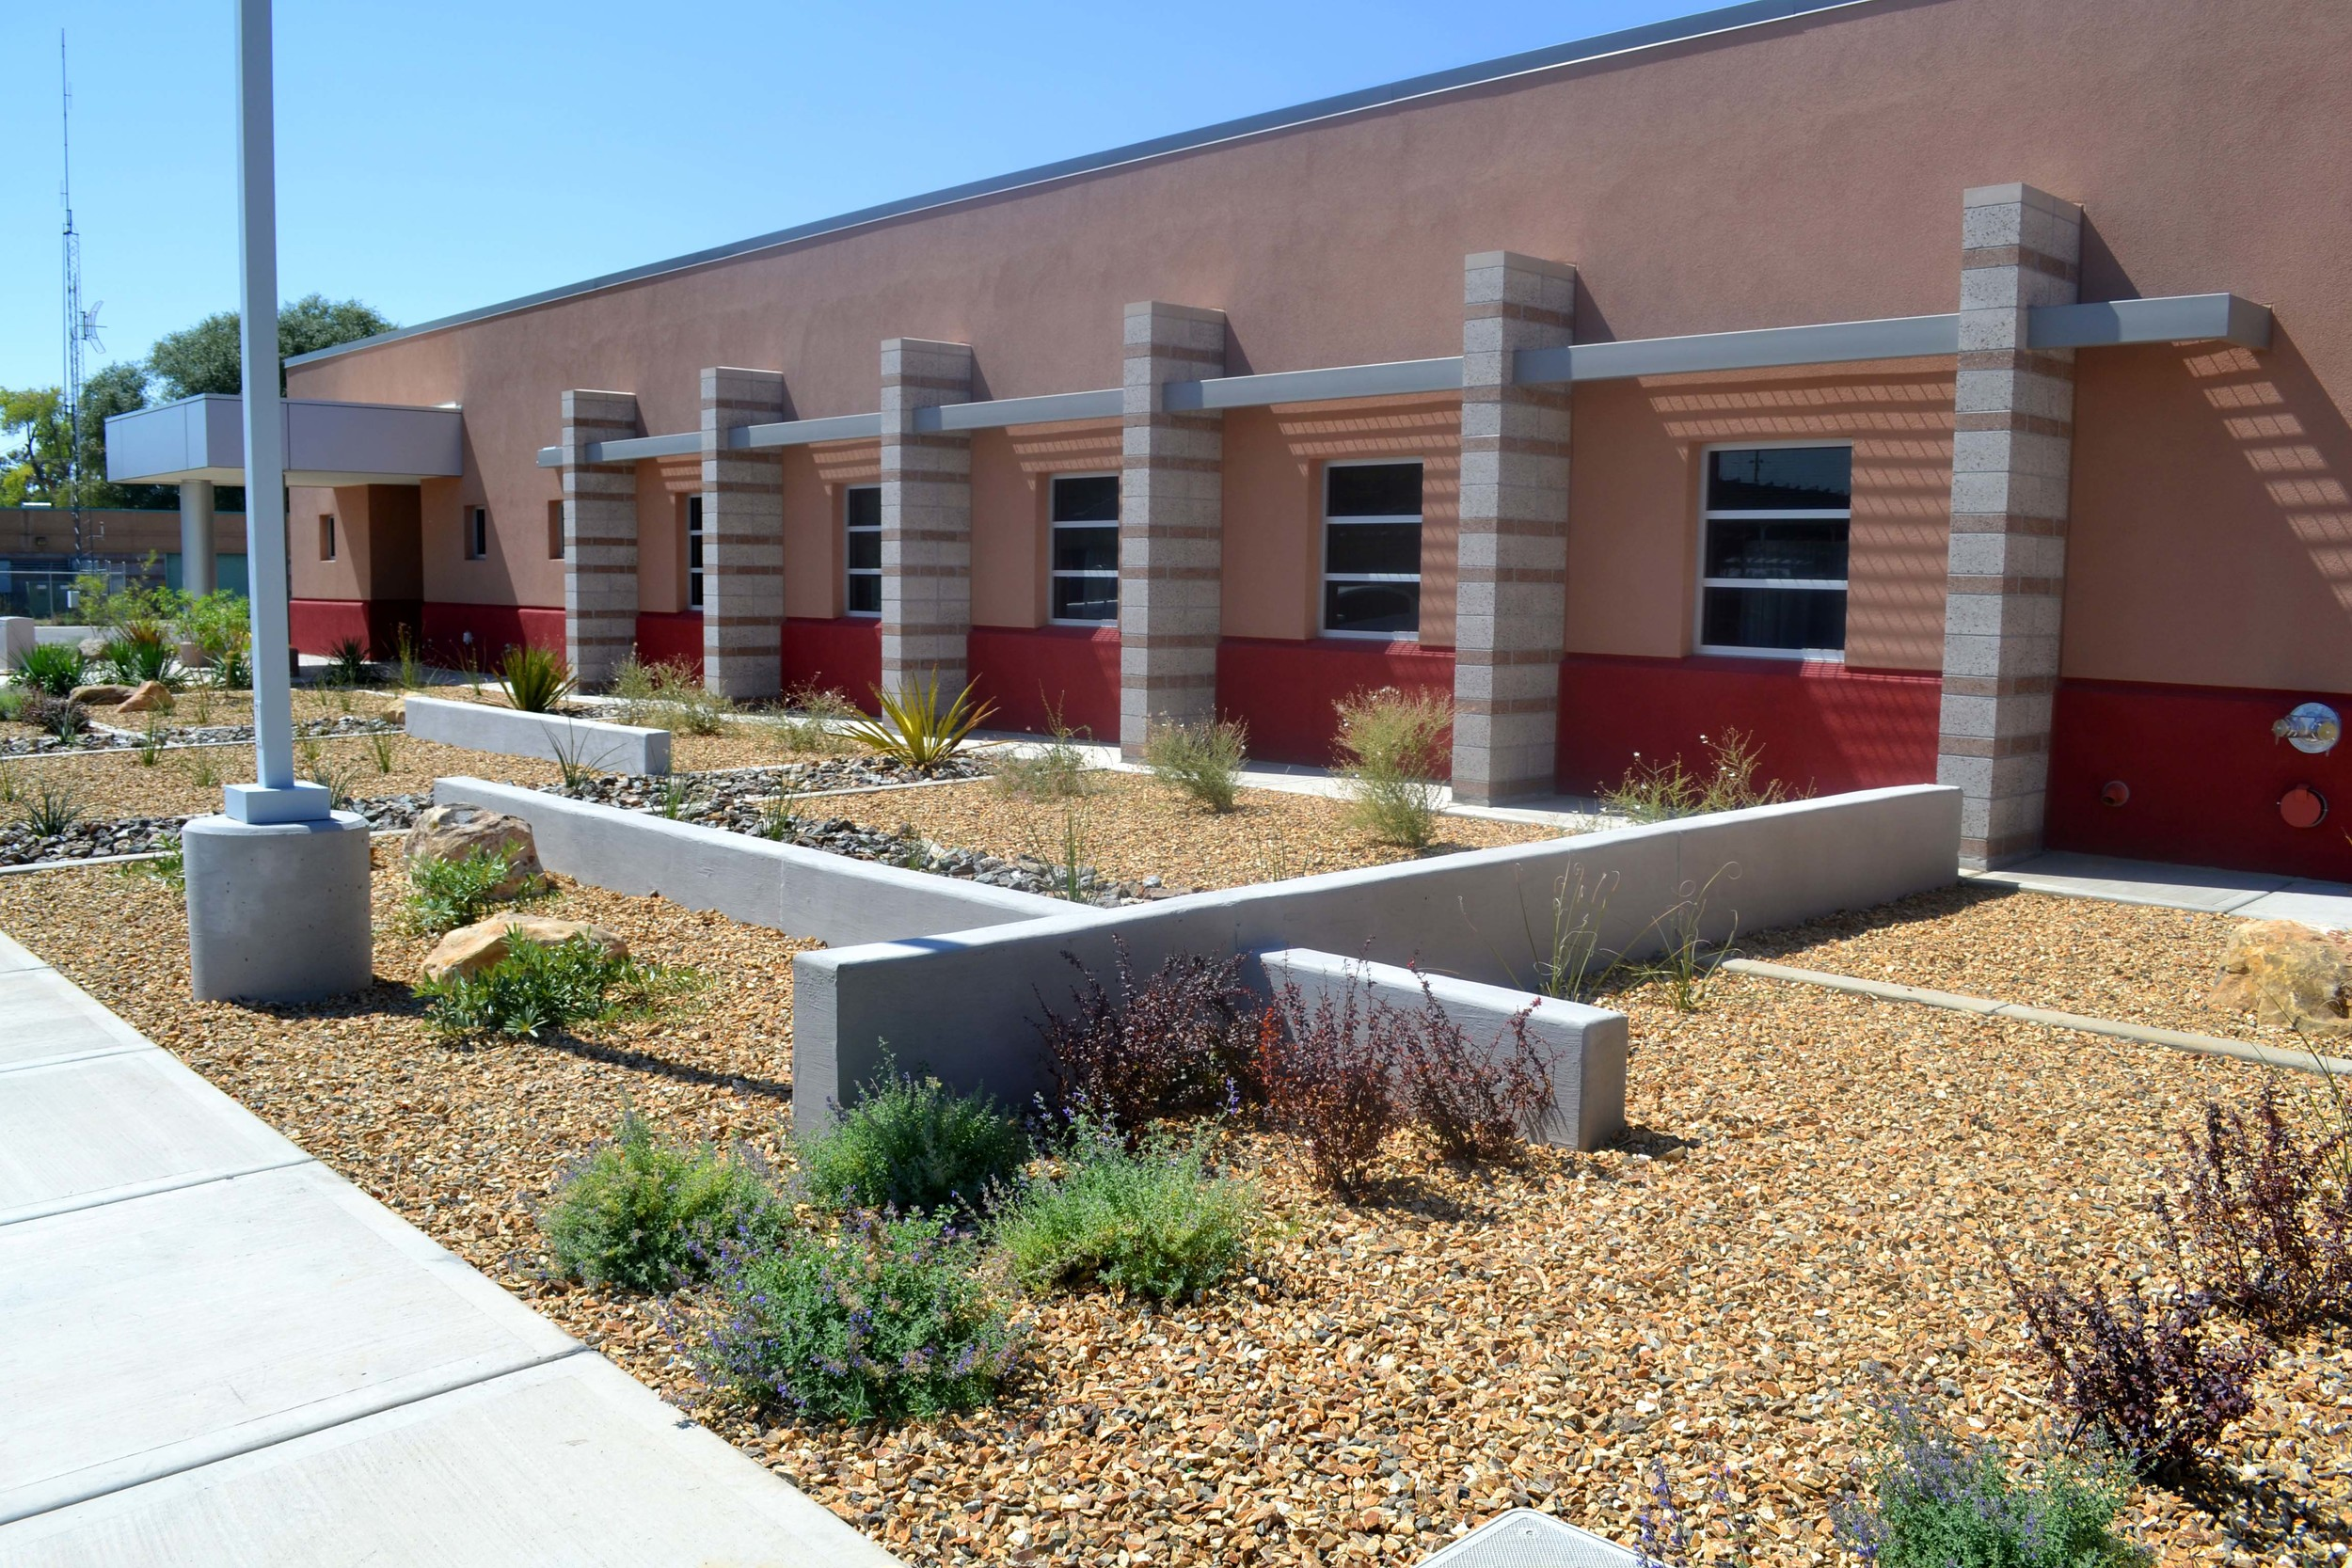 Clean modernist lines at healthcare facility garden